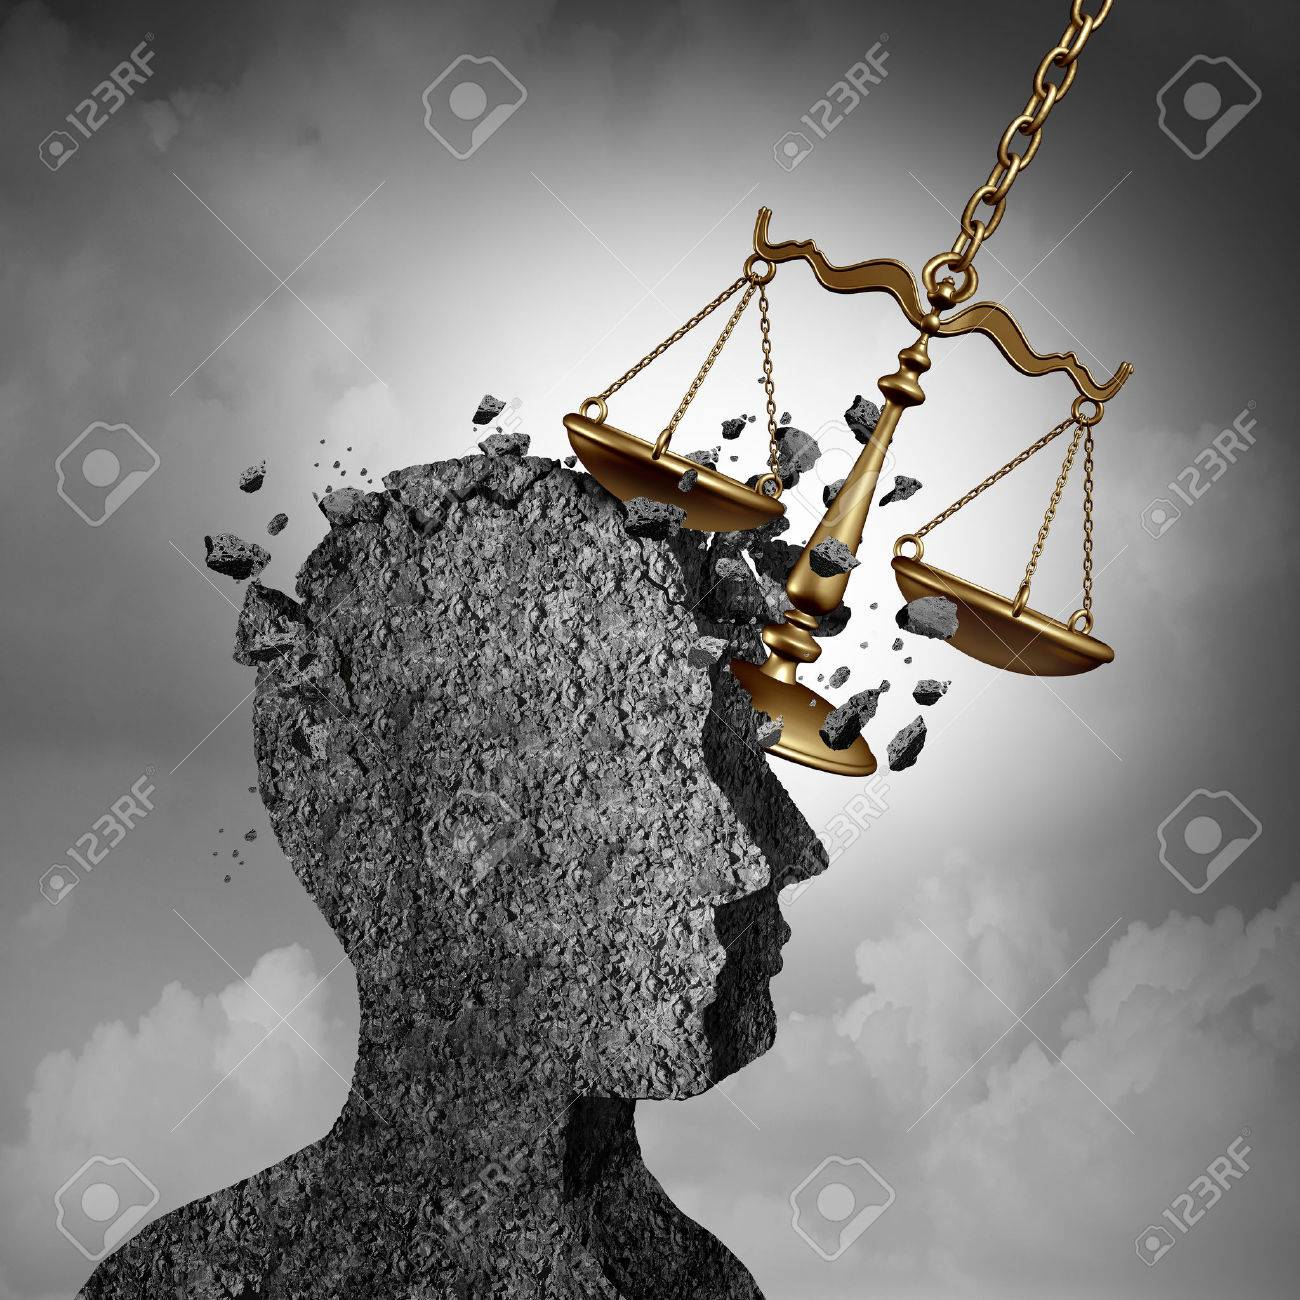 Litigation And Lawsuit Stress Concept As A Lawyer Or Attorney